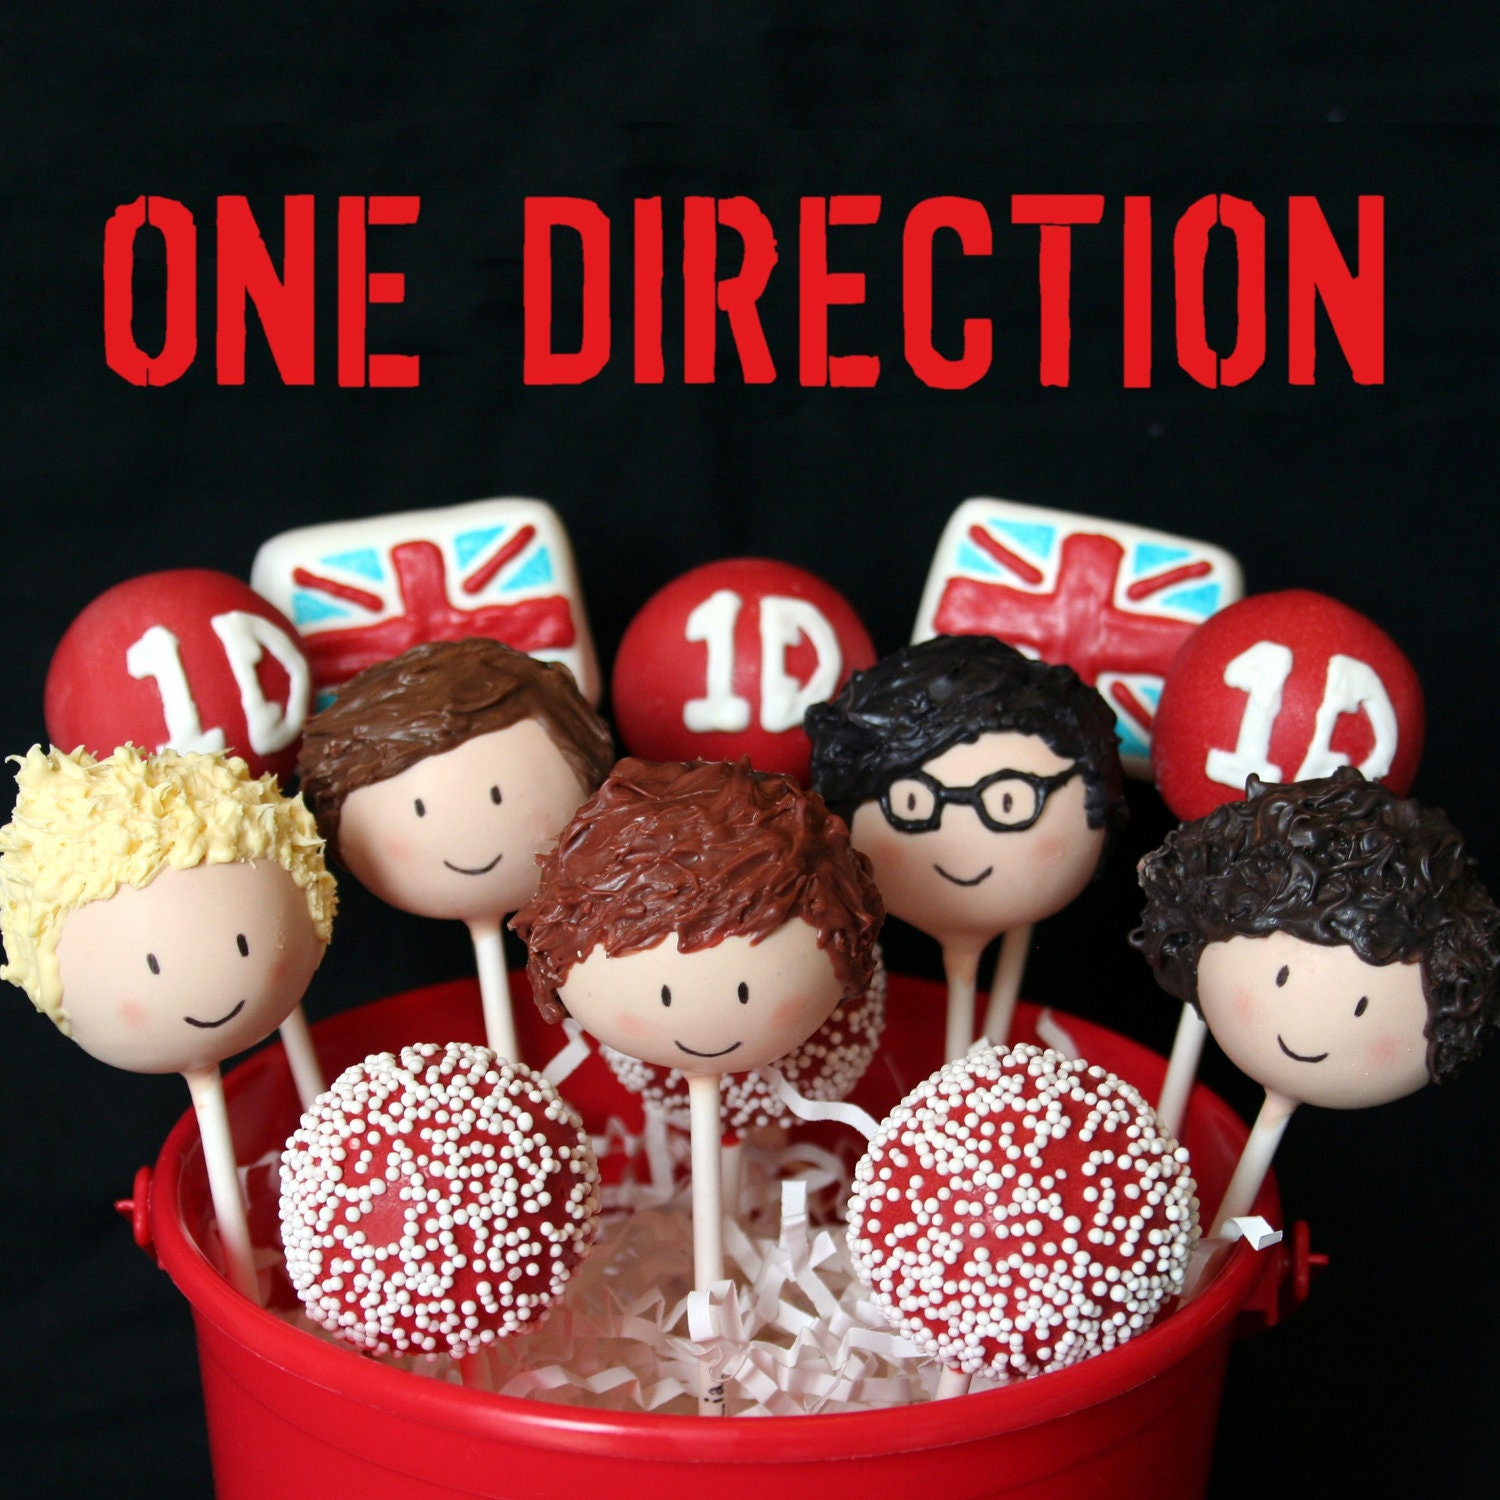 12 One Direction British Boy Band Cake Pops for birthday, party